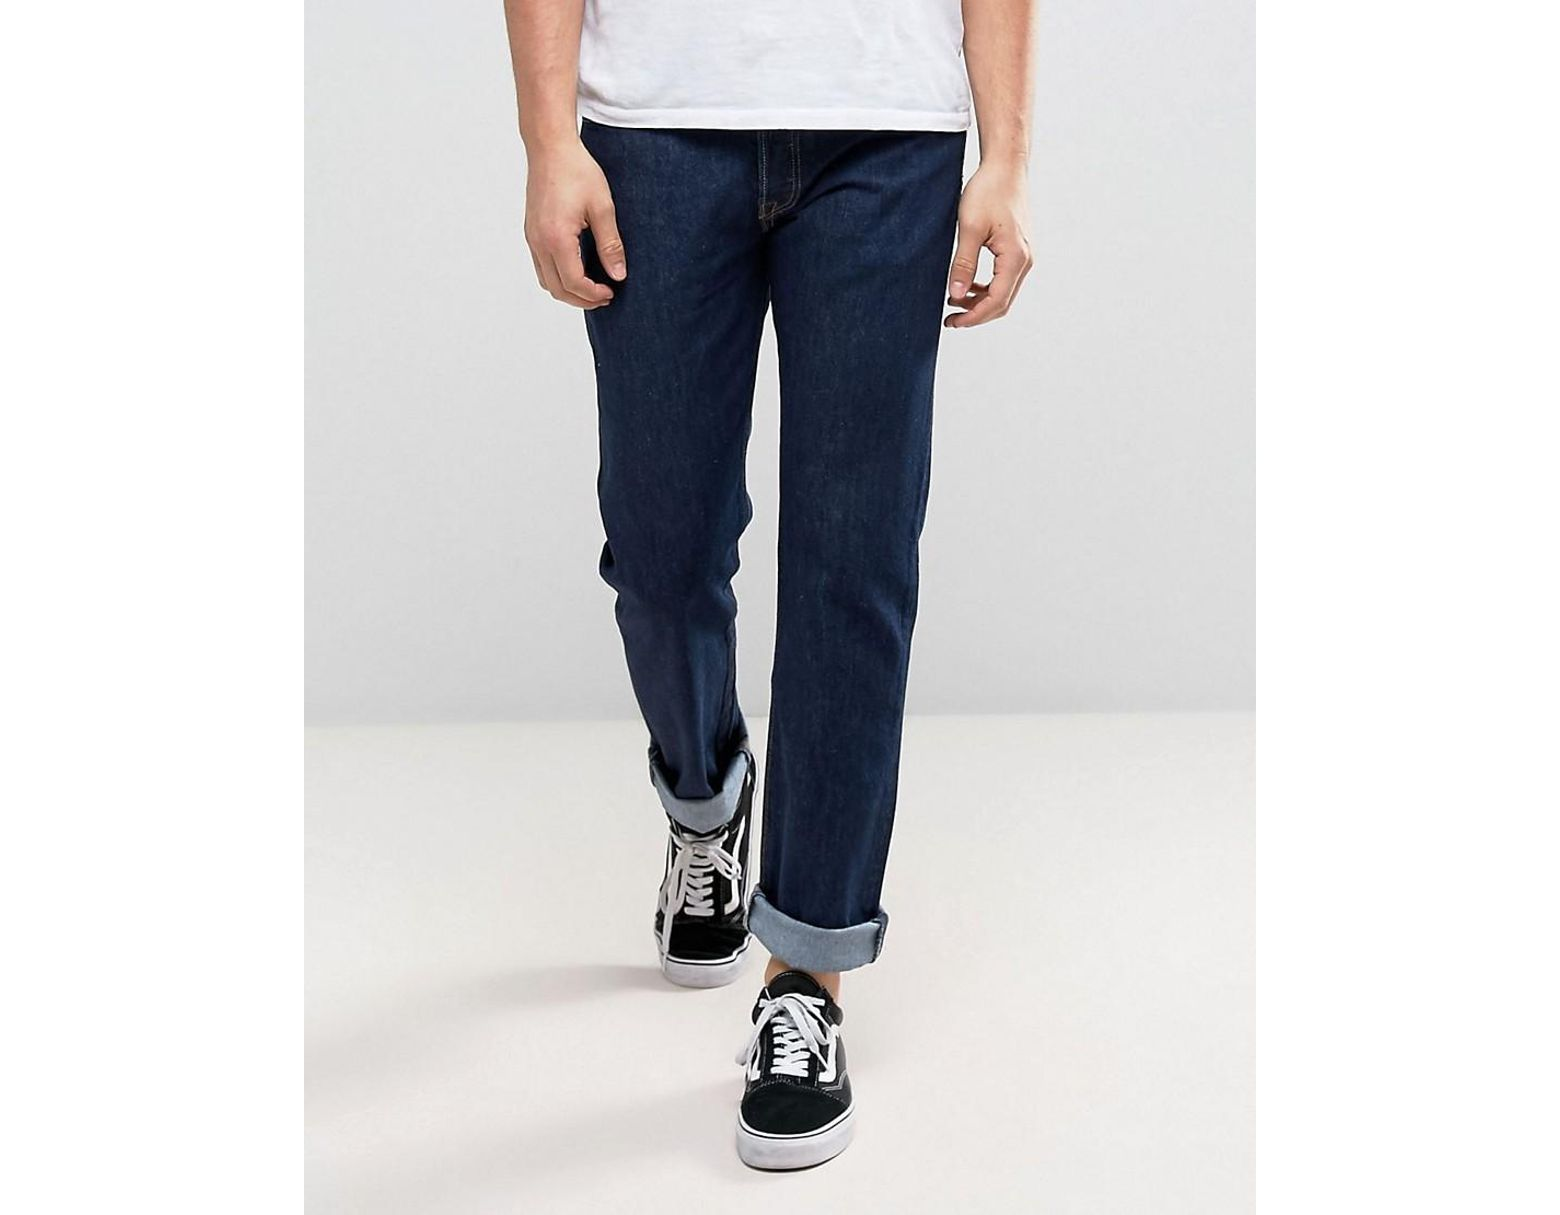 eac3413769 Levi's Original 501 Straight Leg Standard Rise Jeans In Rinse Wash in Blue  for Men - Lyst